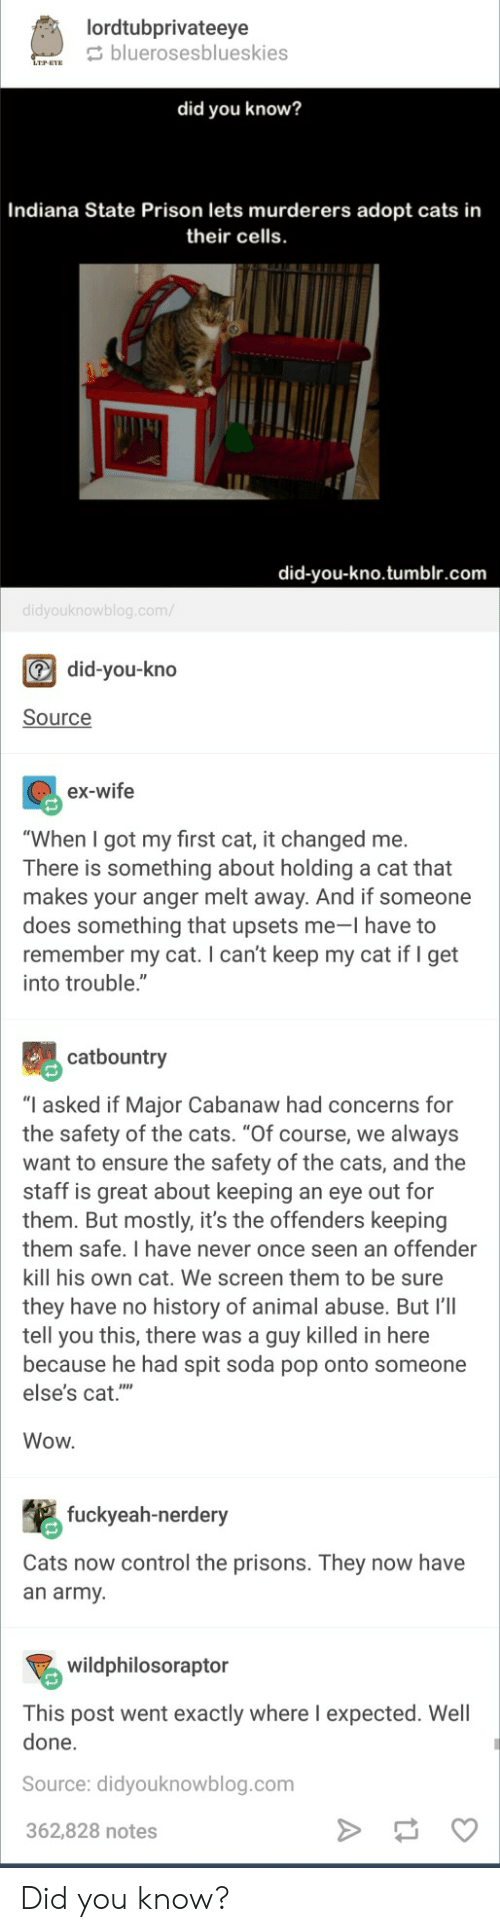 """Cats, Pop, and Soda: lordtubprivateeye  bluerosesblueskies  did you know?  Indiana State Prison lets murderers adopt cats in  their cells  did-you-kno.tumblr.com  did-you-kno  Source  ex-wife  """"When I got my first cat, it changed me.  There is something about holding a cat that  makes your anger melt away. And if someone  does something that upsets me-I have to  remember my cat. I can't keep my cat if I get  into trouble.""""  catbountry  """"I asked if Major Cabanaw had concerns for  the safety of the cats. """"Of course, we always  want to ensure the safety of the cats, and the  staff is great about keeping an eye out for  them. But mostly, it's the offenders keeping  them safe. I have never once seen an offender  kill his own cat. We screen them to be sure  they have no history of animal abuse. But I'lI  tell you this, there was a guy killed in here  because he had spit soda pop onto someone  else's cat.""""  Wow  fuckyeah-nerdery  Cats now control the prisons. They now have  an army  wildphilosoraptor  This post went exactly where I expected. Well  done.  Source: didyouknowblog.com  362,828 notes Did you know?"""